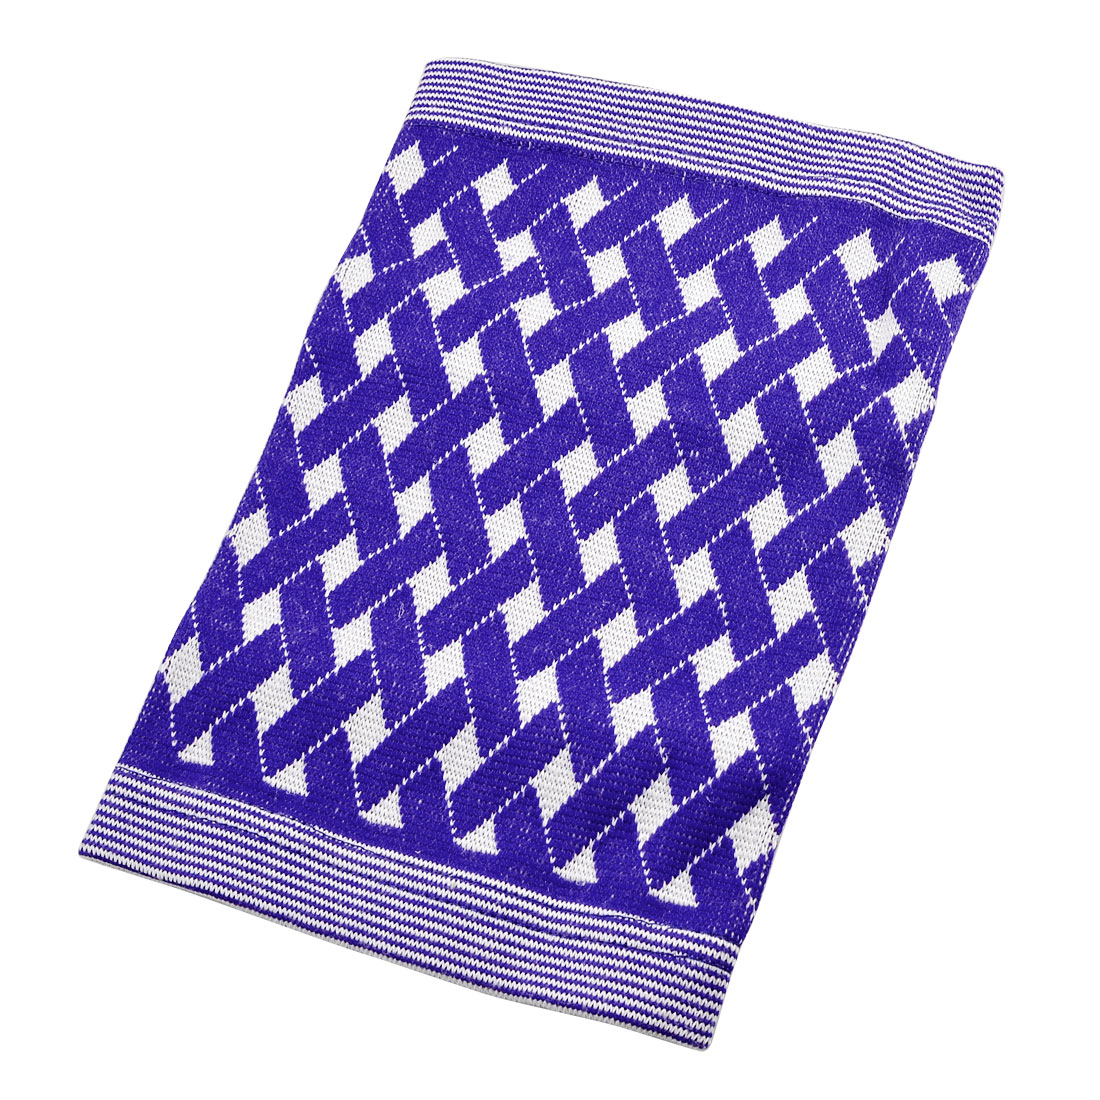 Striped Trim Blue White Woven Plaid Pattern Elastic Knee Support Protector